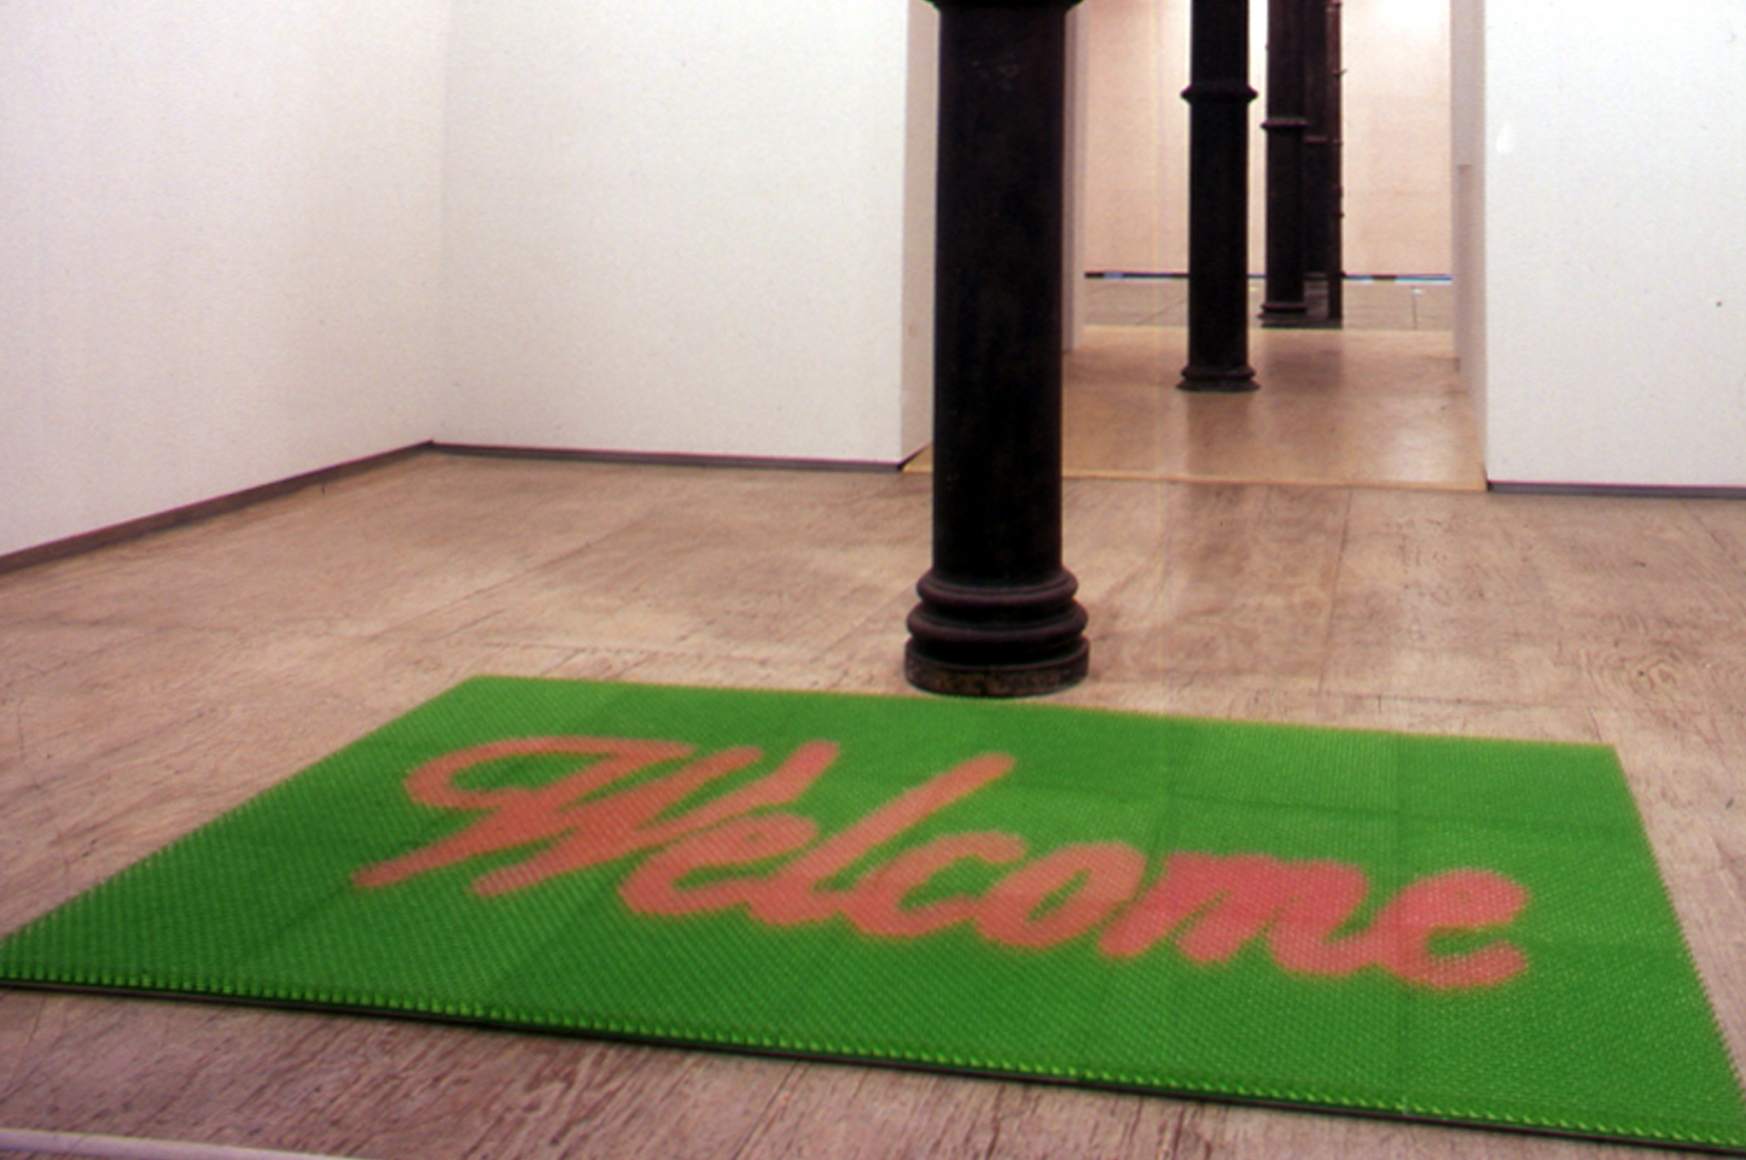 DO HO SUH, Doormat: Welcome (Green), 2000